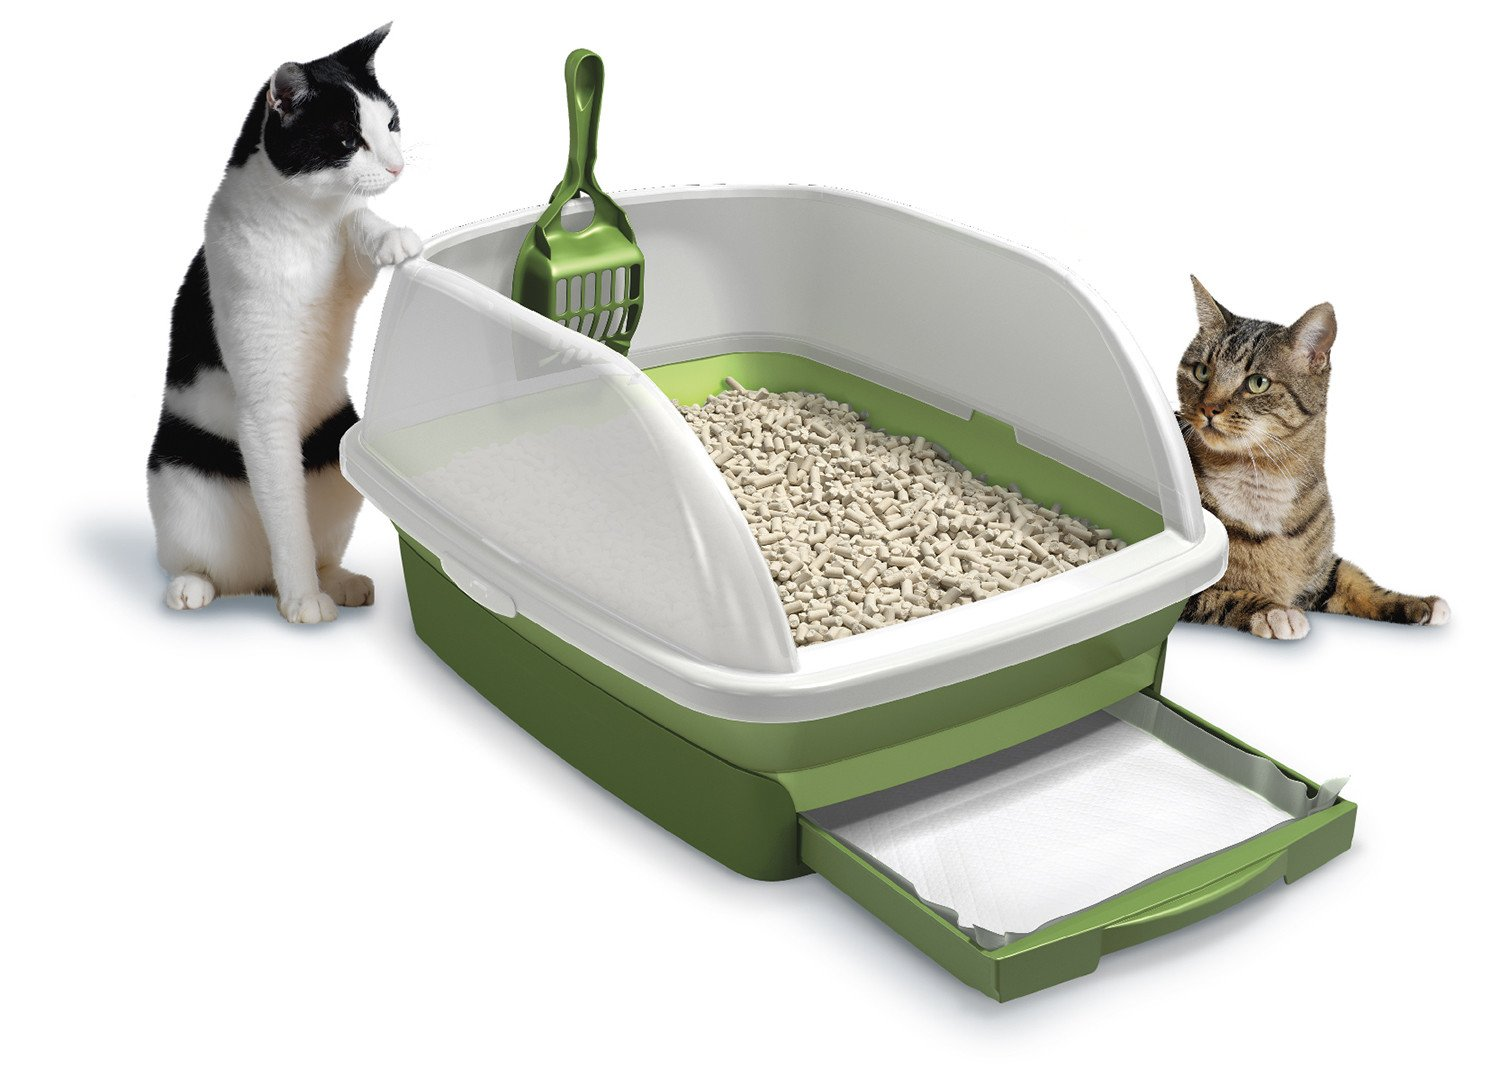 Top 10 best cat litter boxes reviews 2016 2017 on flipboard - Cat litter boxes for small spaces design ...